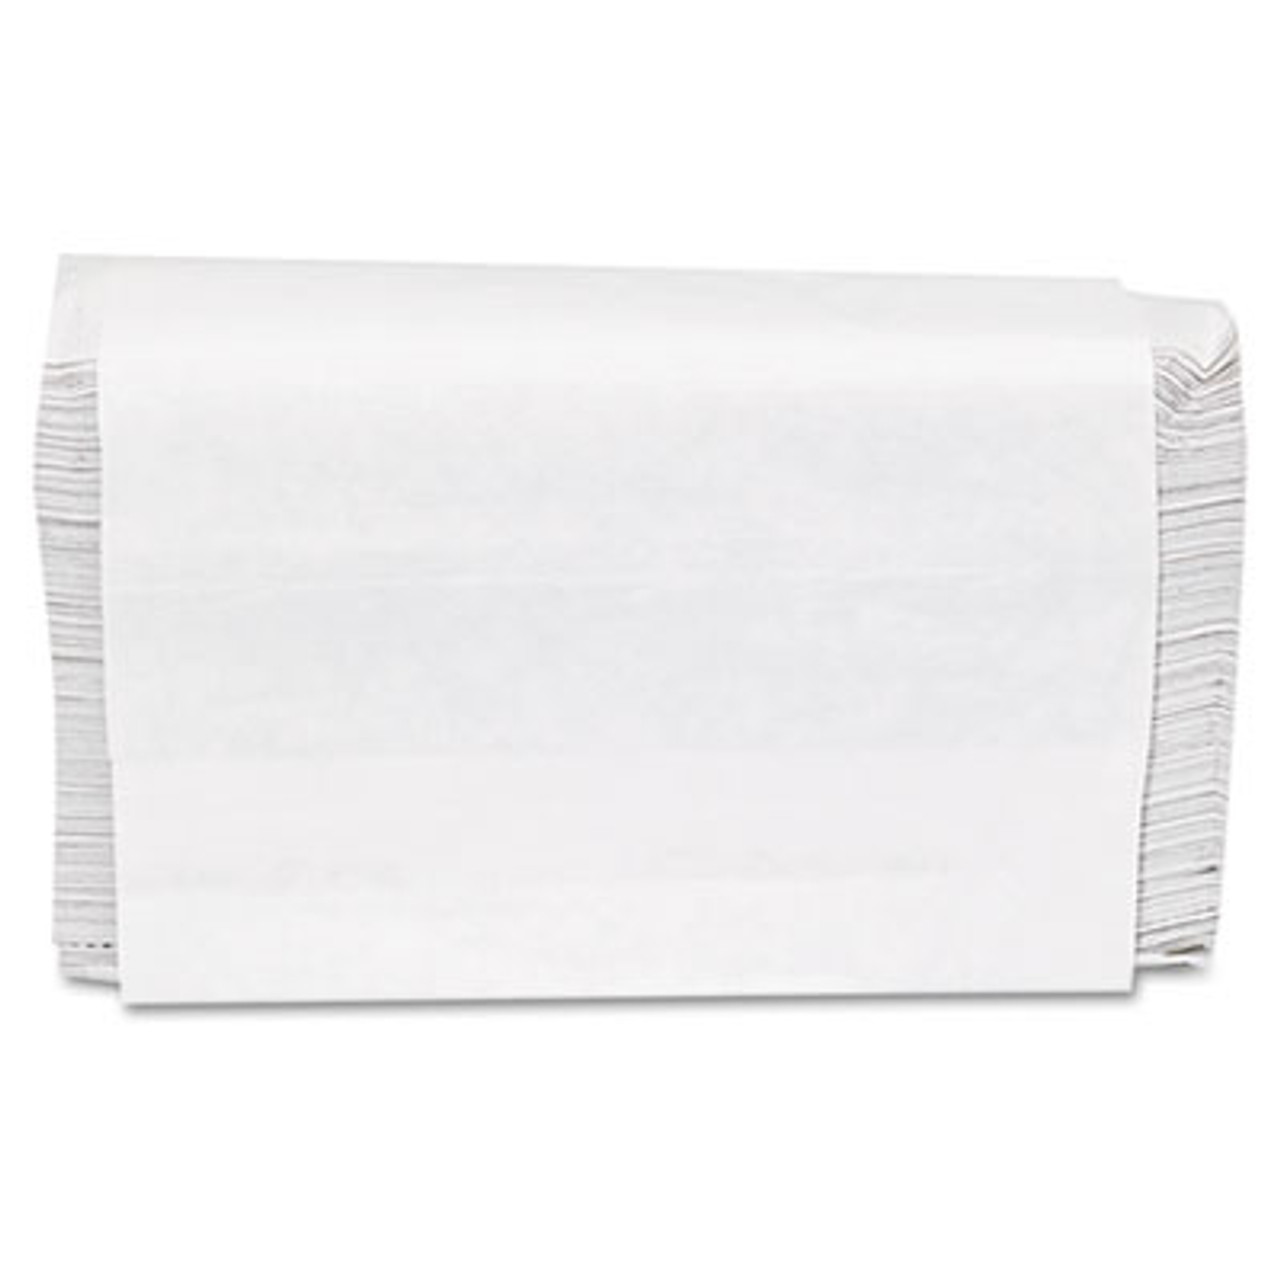 9 X 9 9//20 250 Towels//pack White Boardwalk 6200 Multifold Paper Towels 16